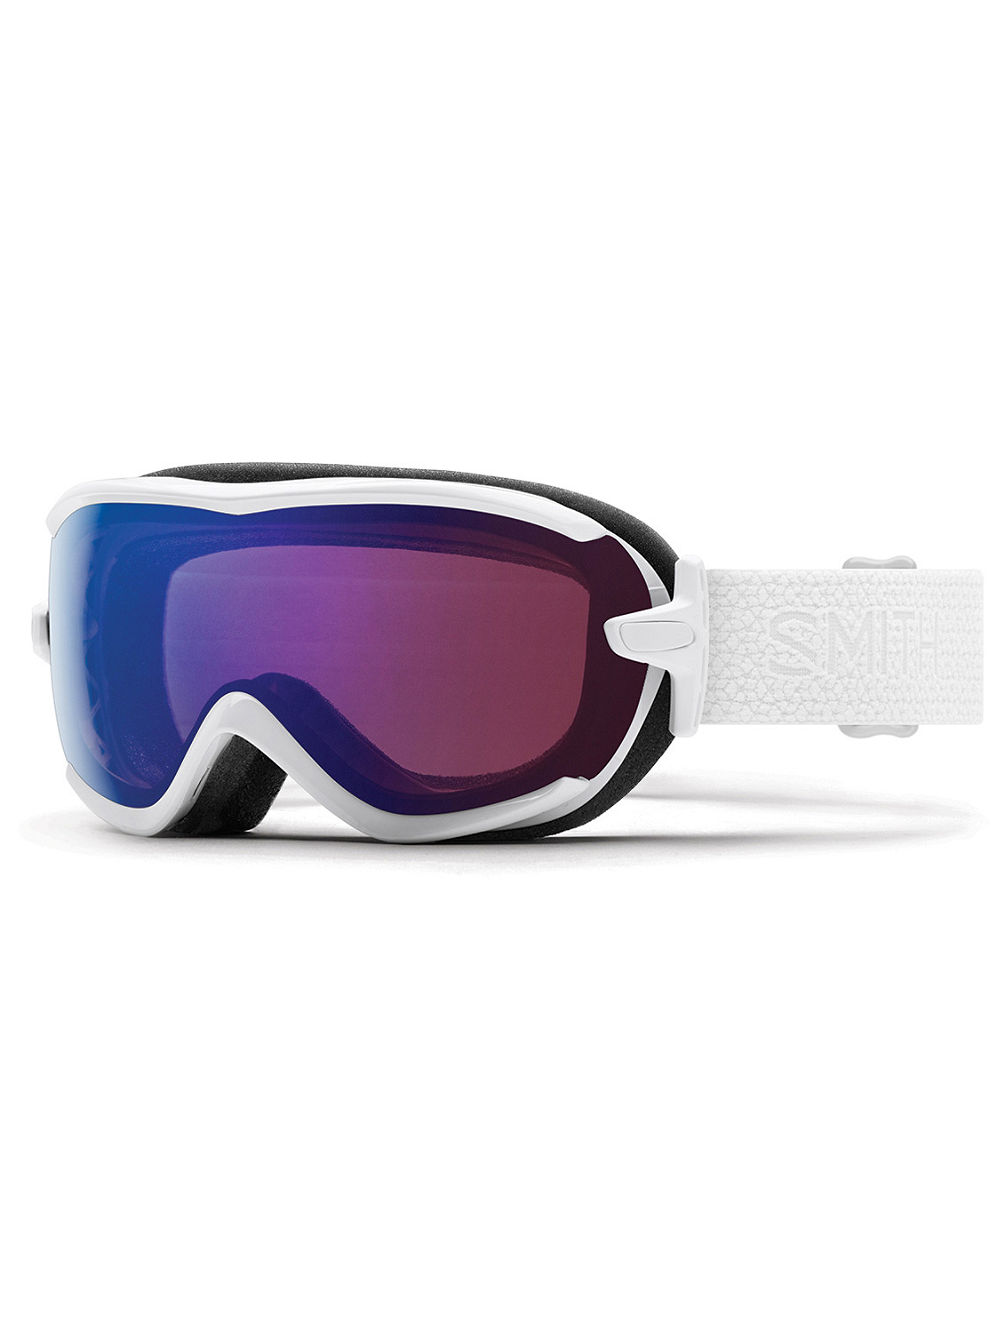 Virtue Sph White Mosaic Goggle